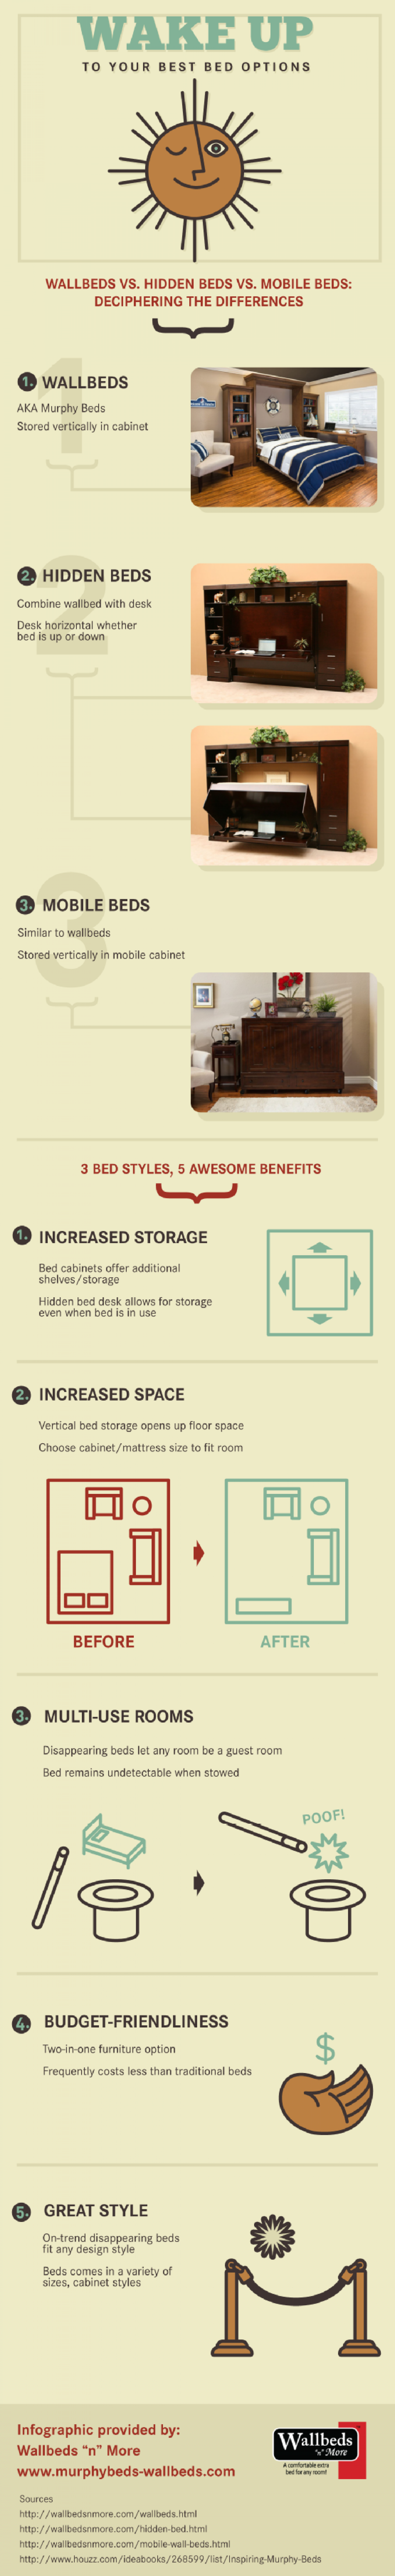 Wake Up to Your Best Bed Options Infographic